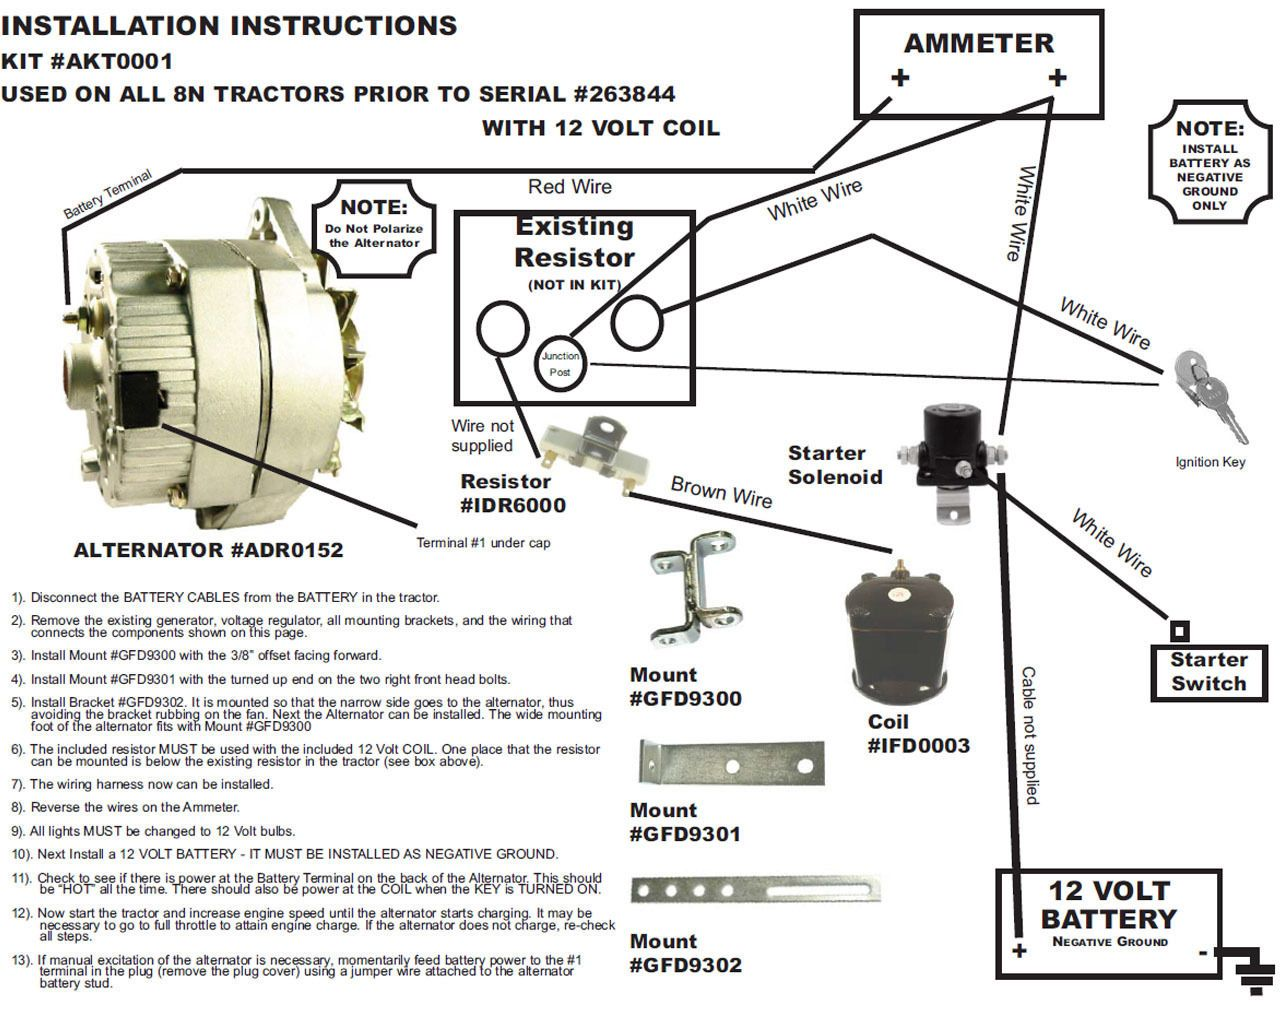 pin by bill utter on 8n ford tractor 8n ford tractor, ford  wiring diagram for converting ford generator and regulator to a #7